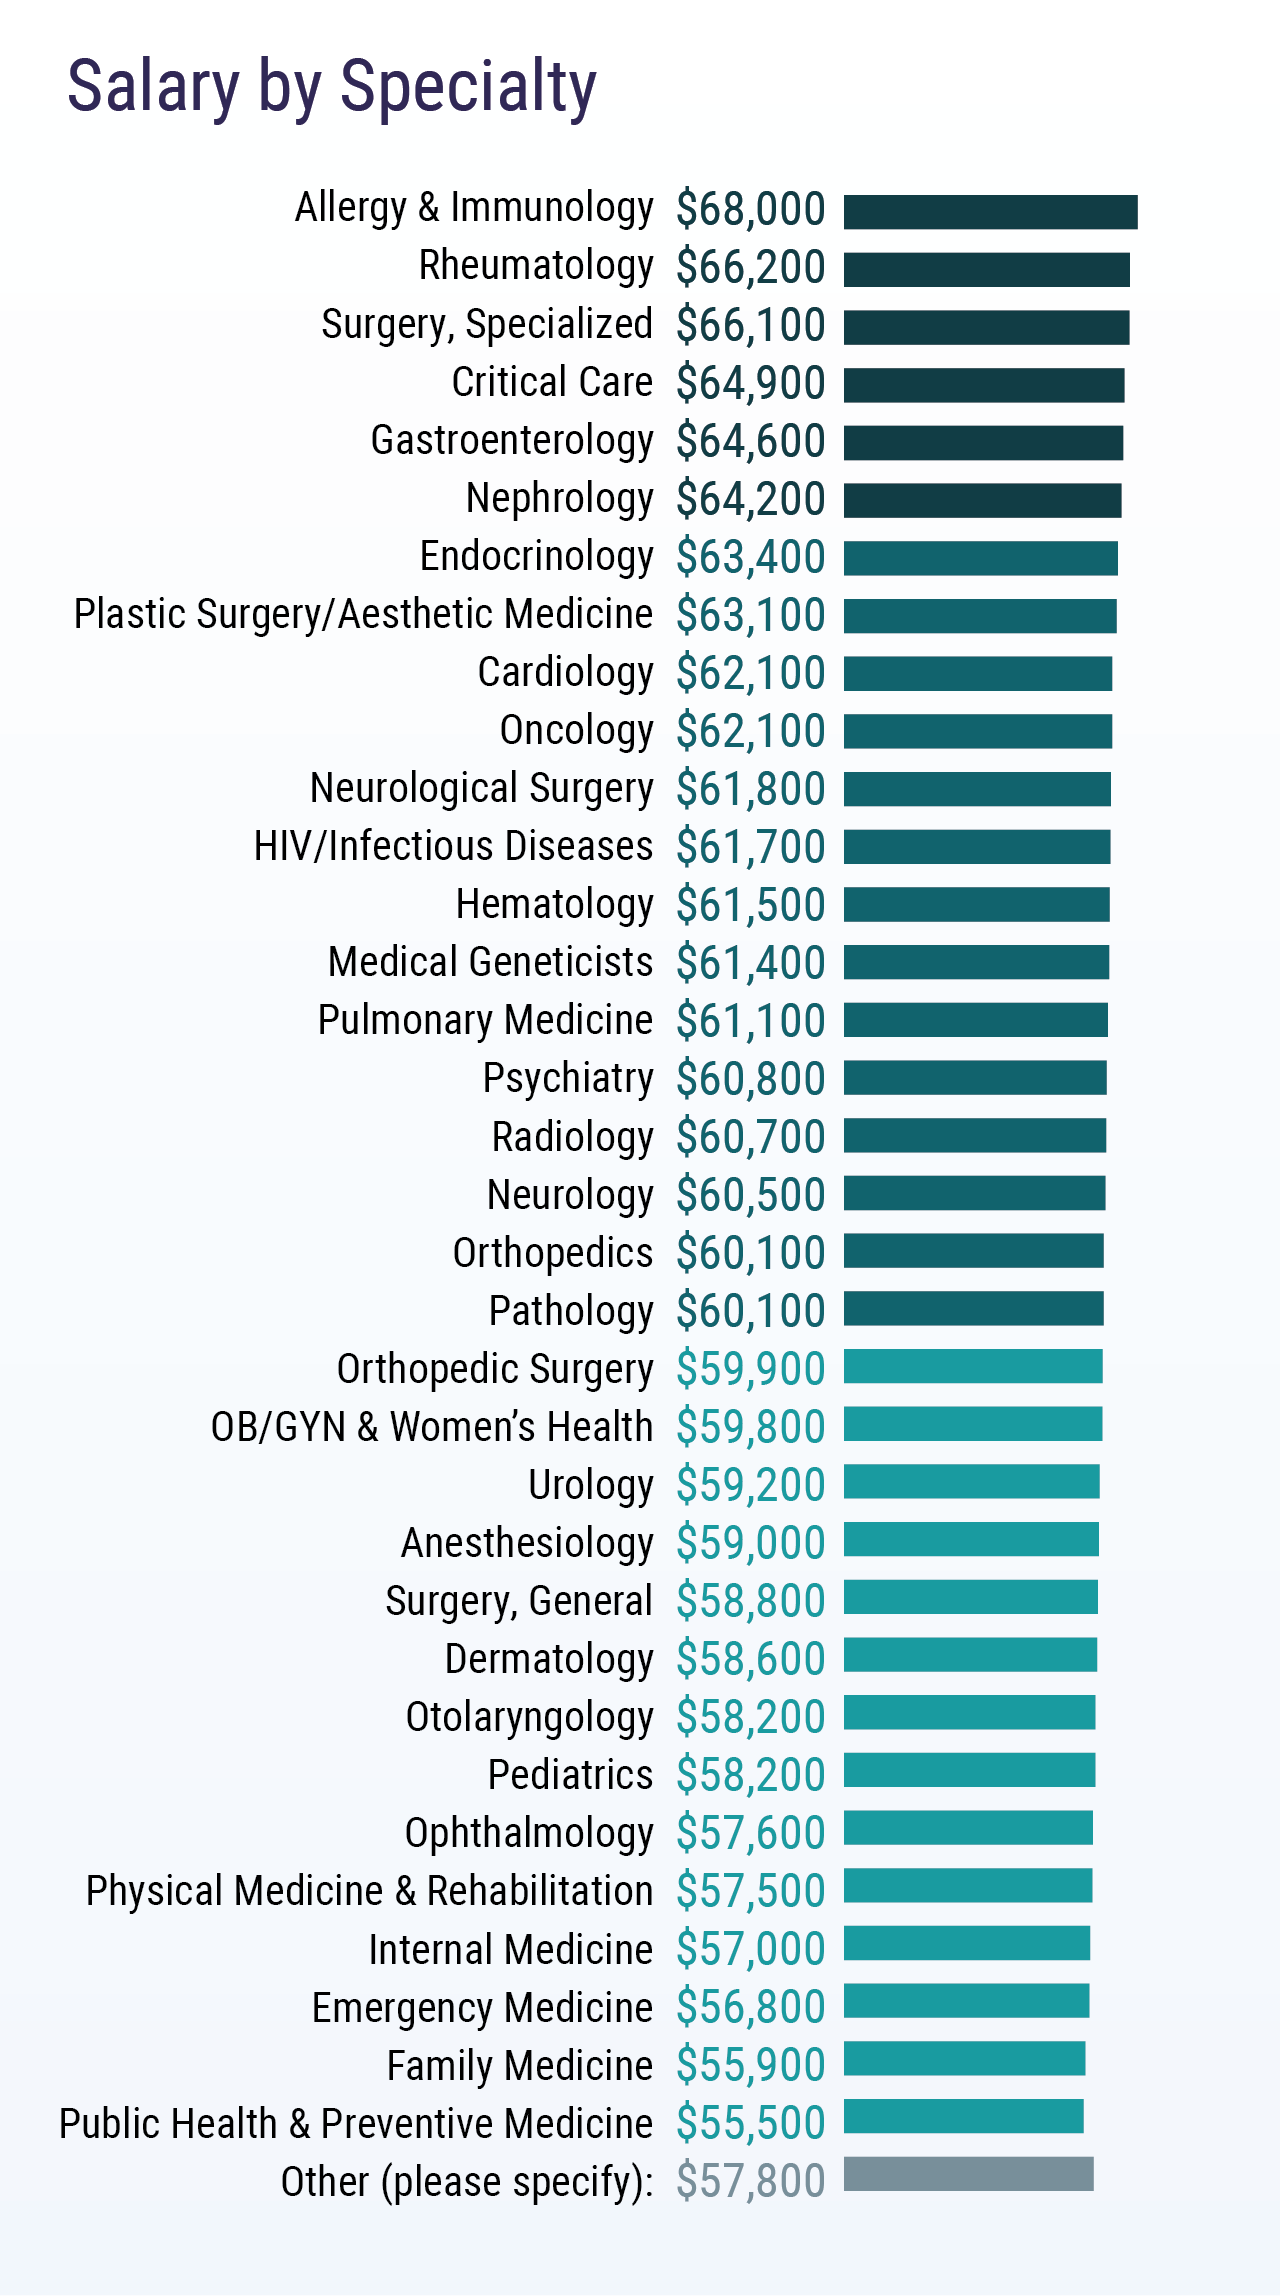 Average resident salary by specialty